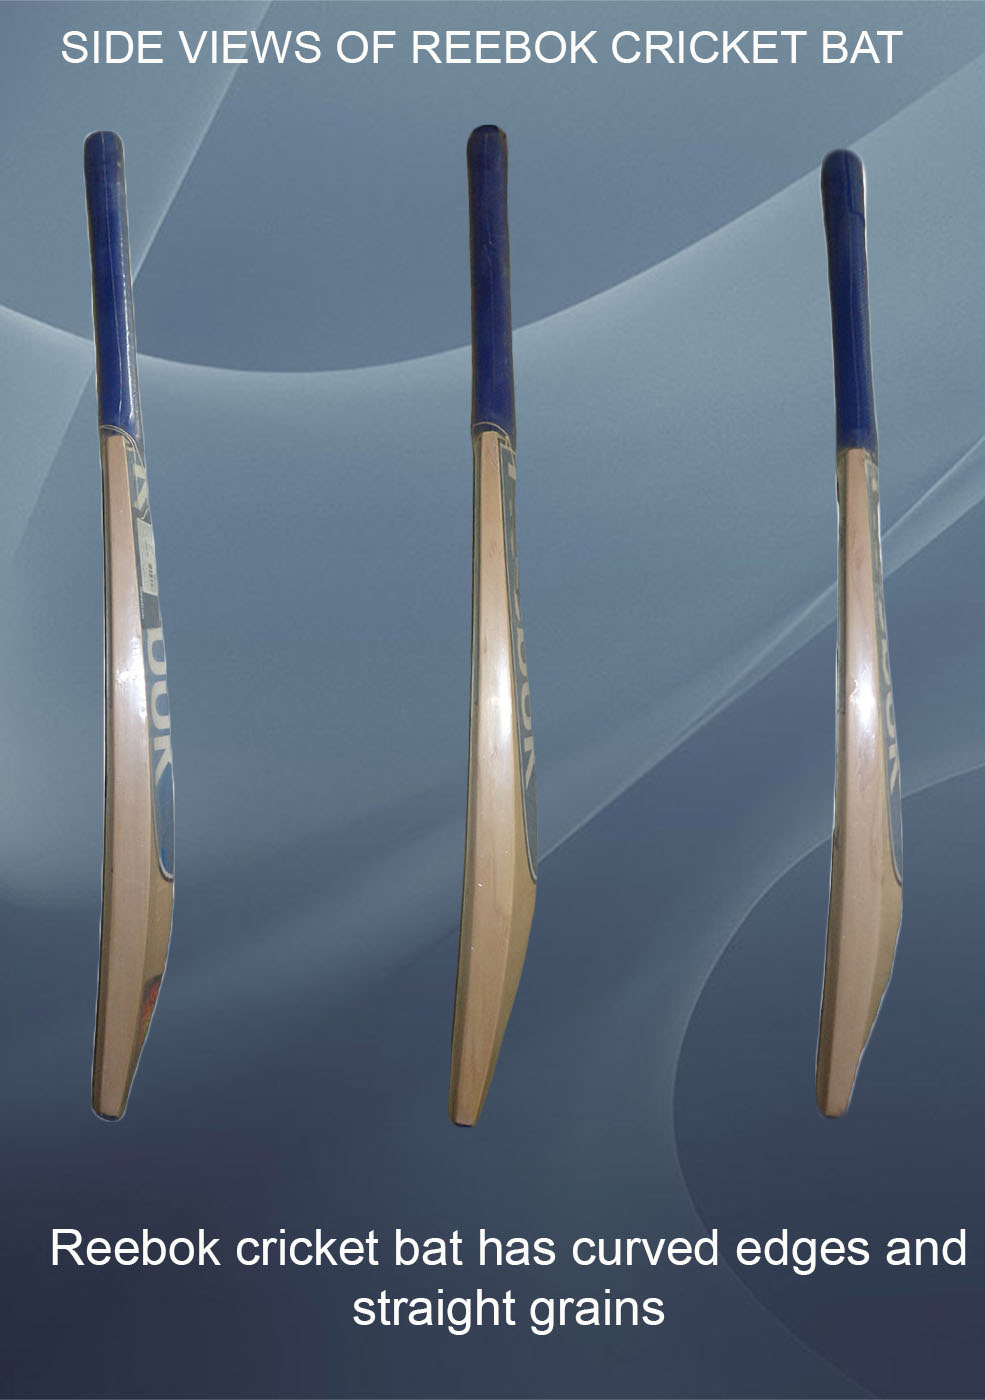 Reebok Cricket bats